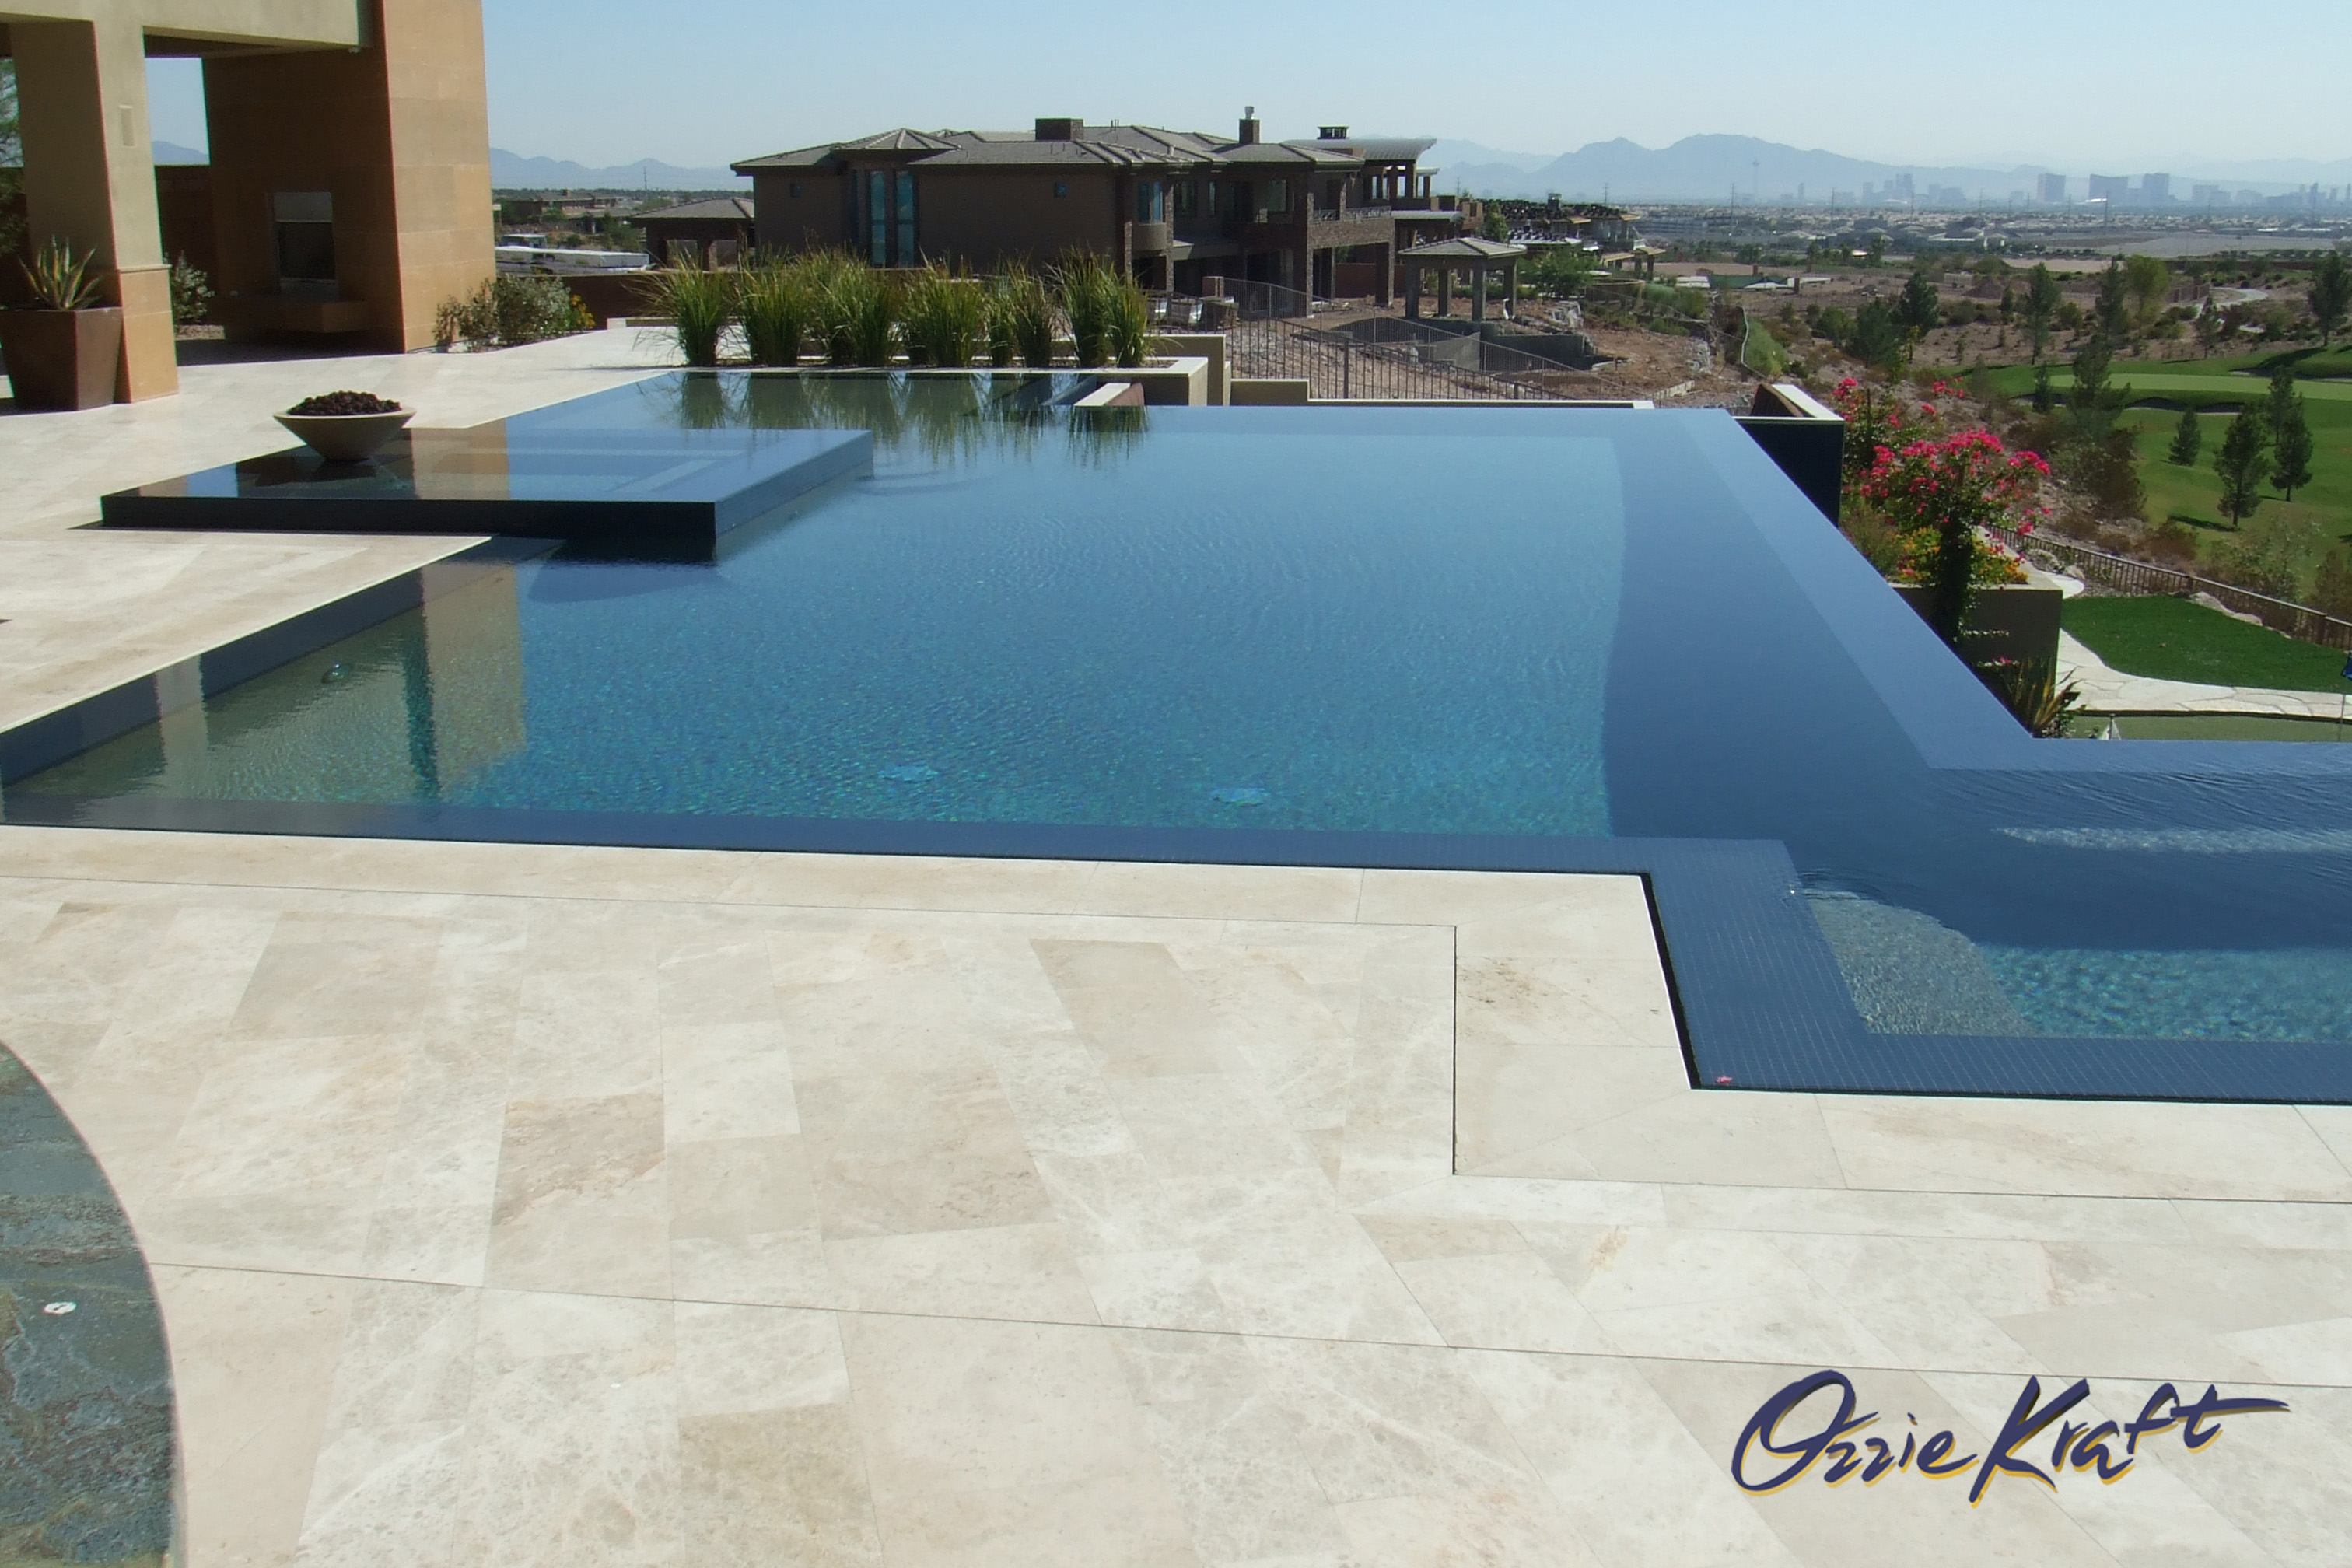 No edge infinity swimming pool ozzie kraft pools for Infinity swimming pools pictures